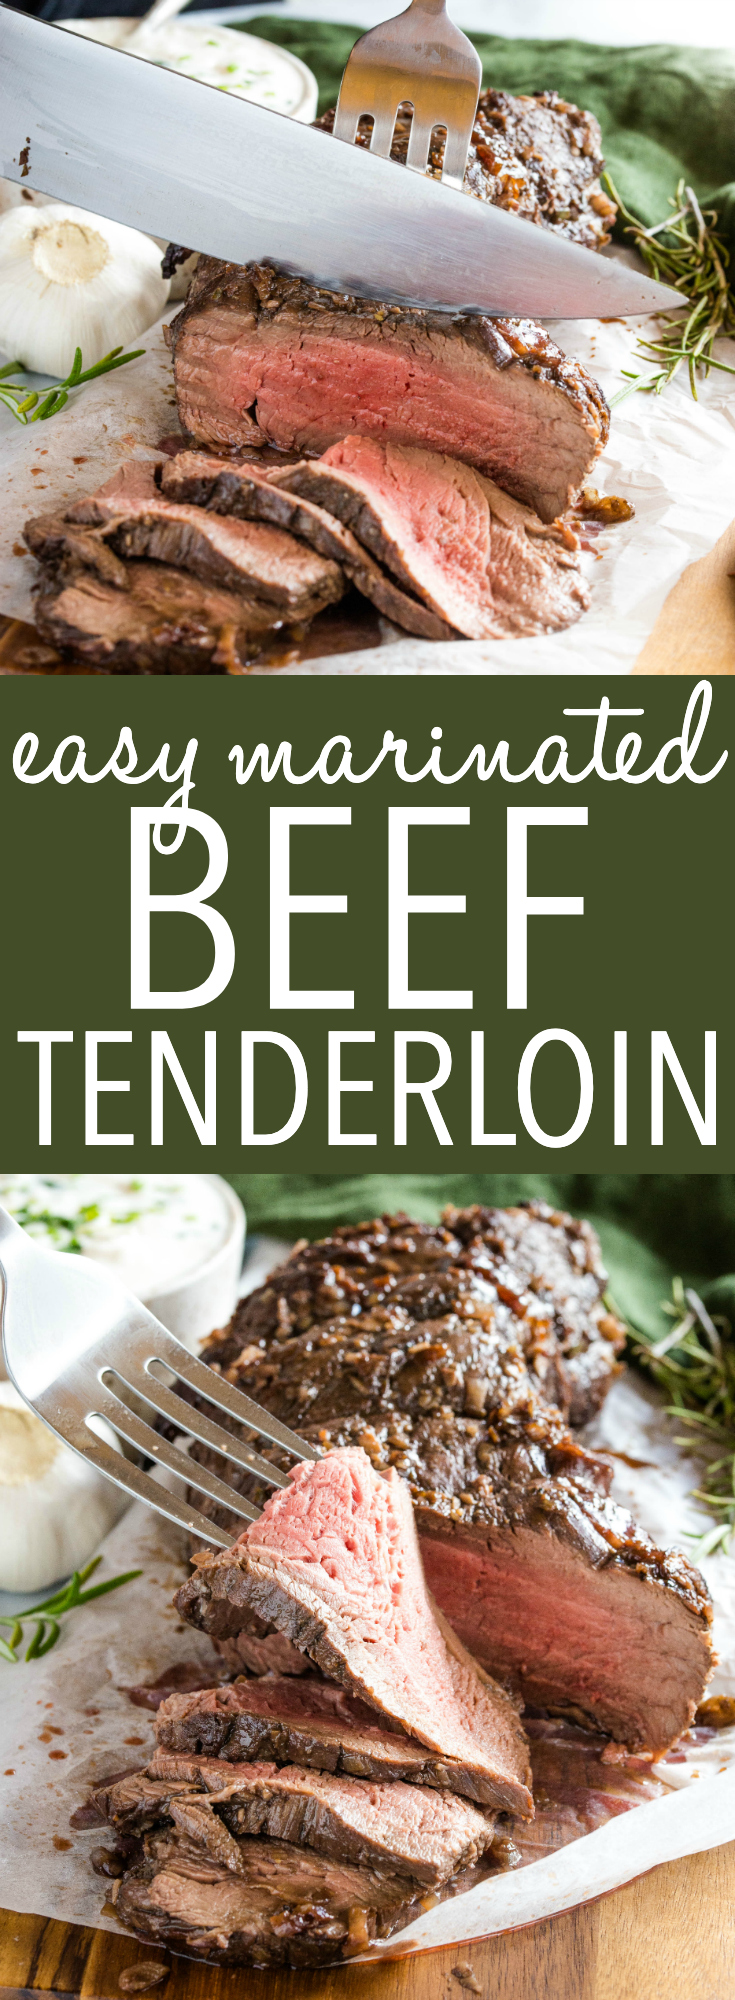 This Best Ever Marinated Beef Tenderloin is perfectly tender & juicy and packed with flavour - Easy to make with a simple marinade and great for the holidays served with horseradish sauce! Recipe from thebusybaker.ca! #holidays #beef #tenderloin #steak #horseradish #sauce #marinade #marinated #meat #roasted #christmas #holidays #newyears #celebration via @busybakerblog